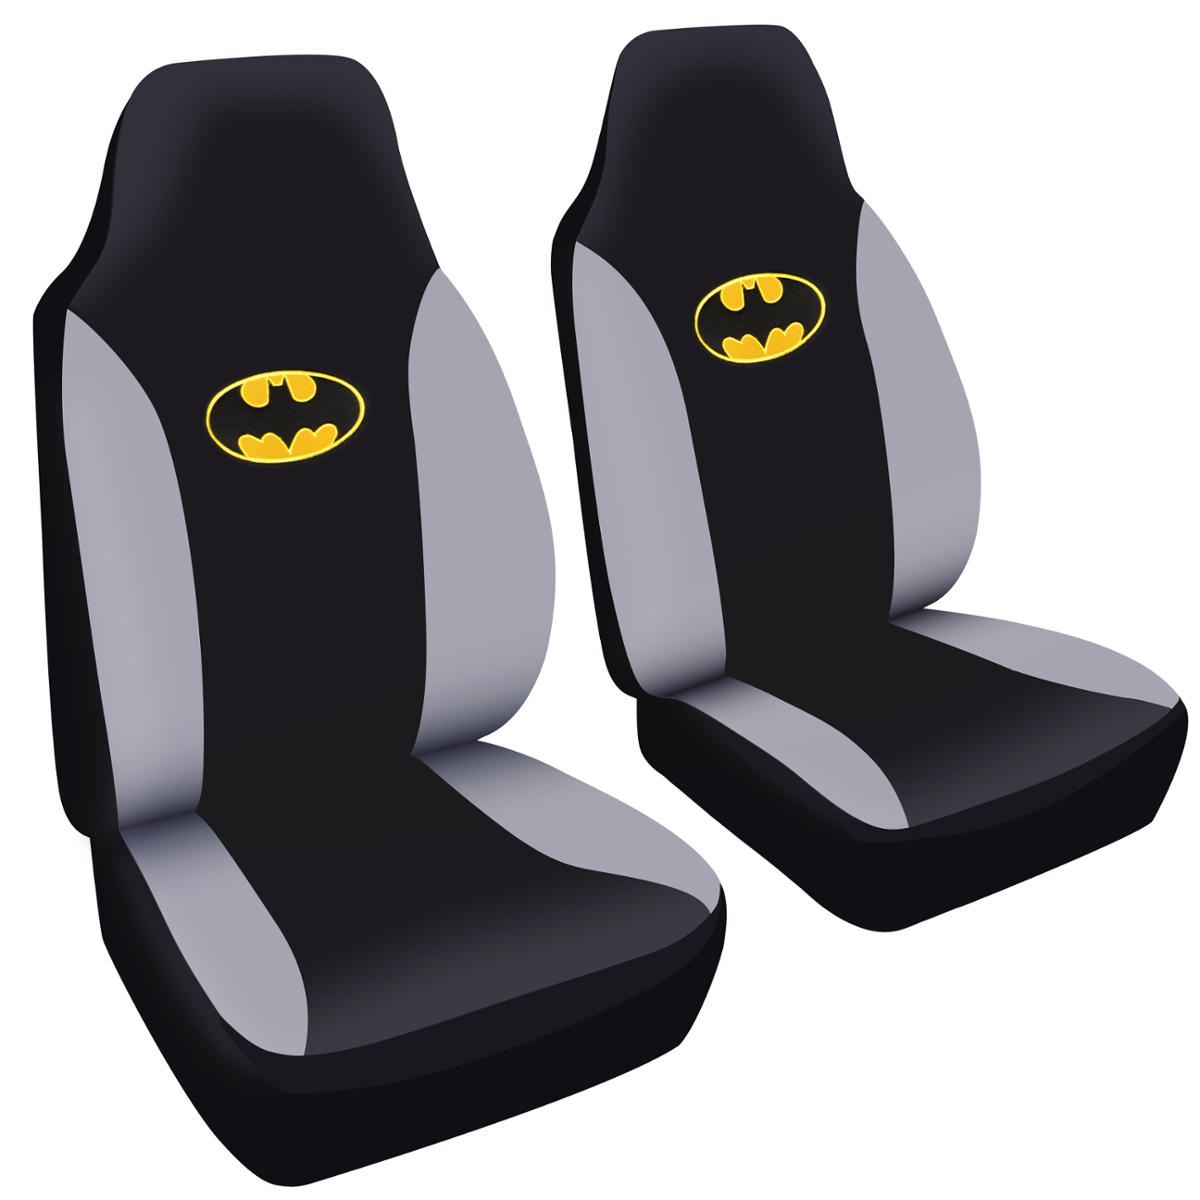 2 pc batman classic seat covers for car suv truck w highback seat snug fit ebay. Black Bedroom Furniture Sets. Home Design Ideas